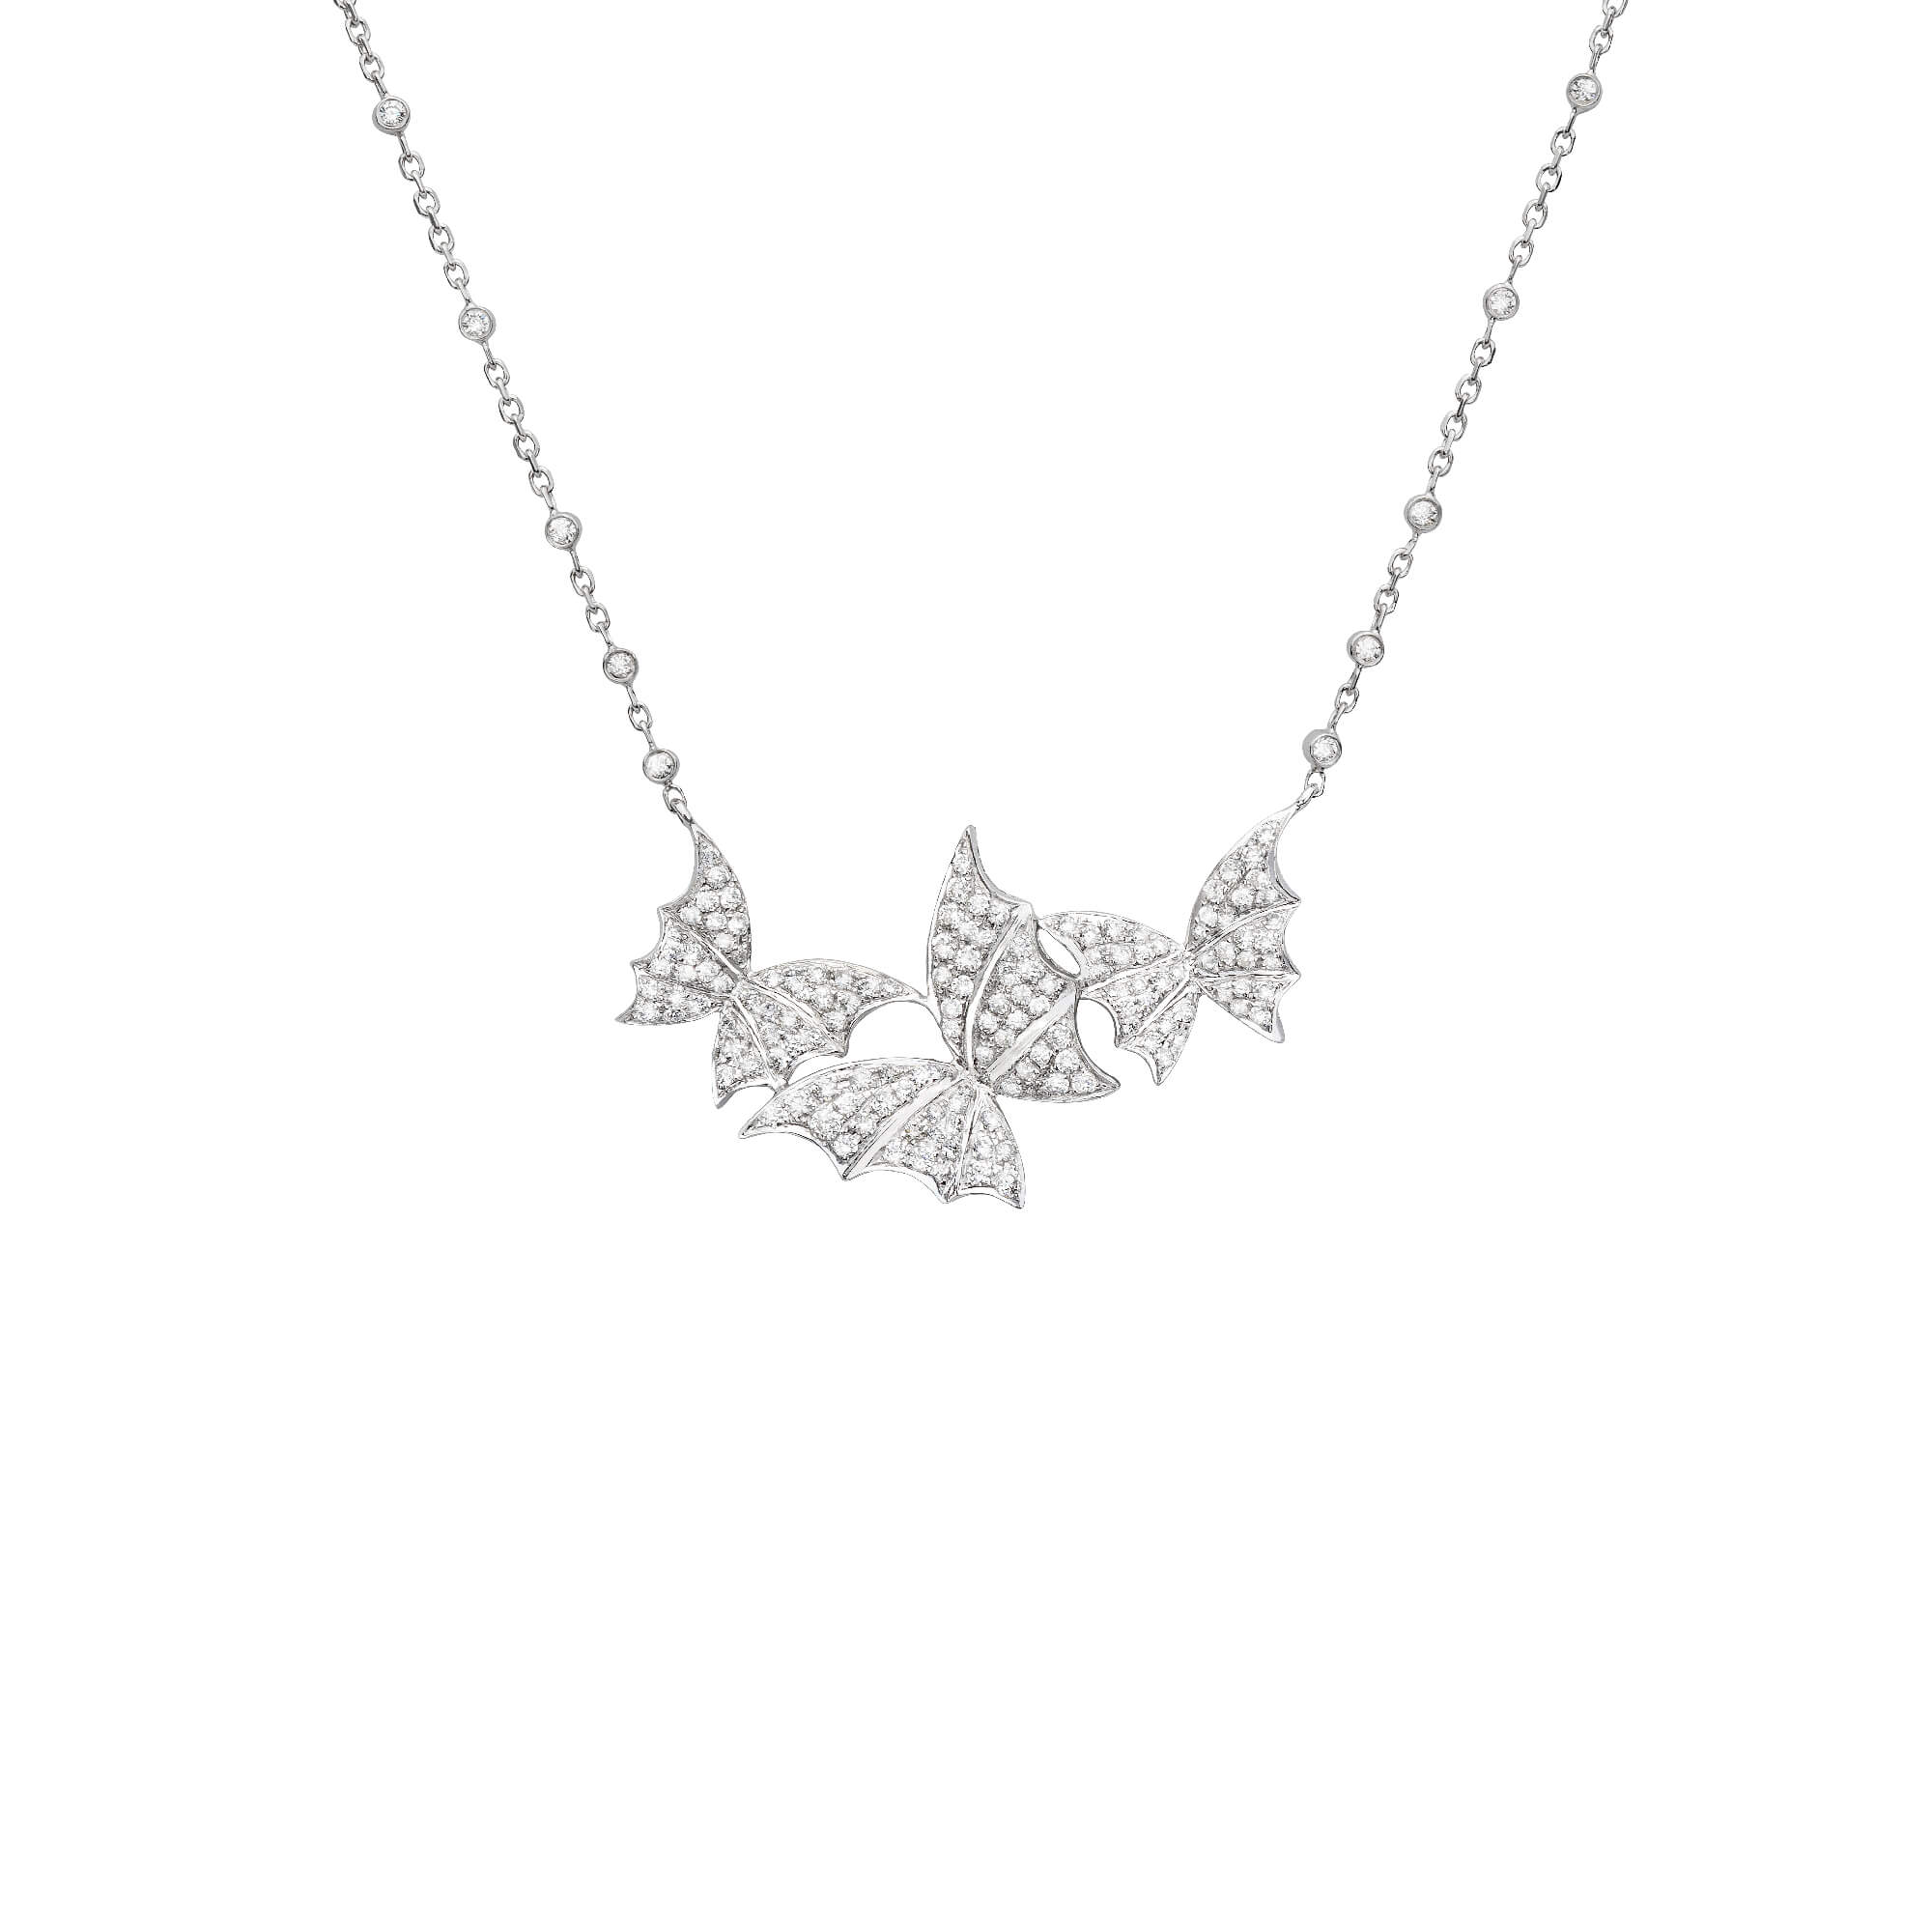 White Gold Pavé Necklace | Fly By Night